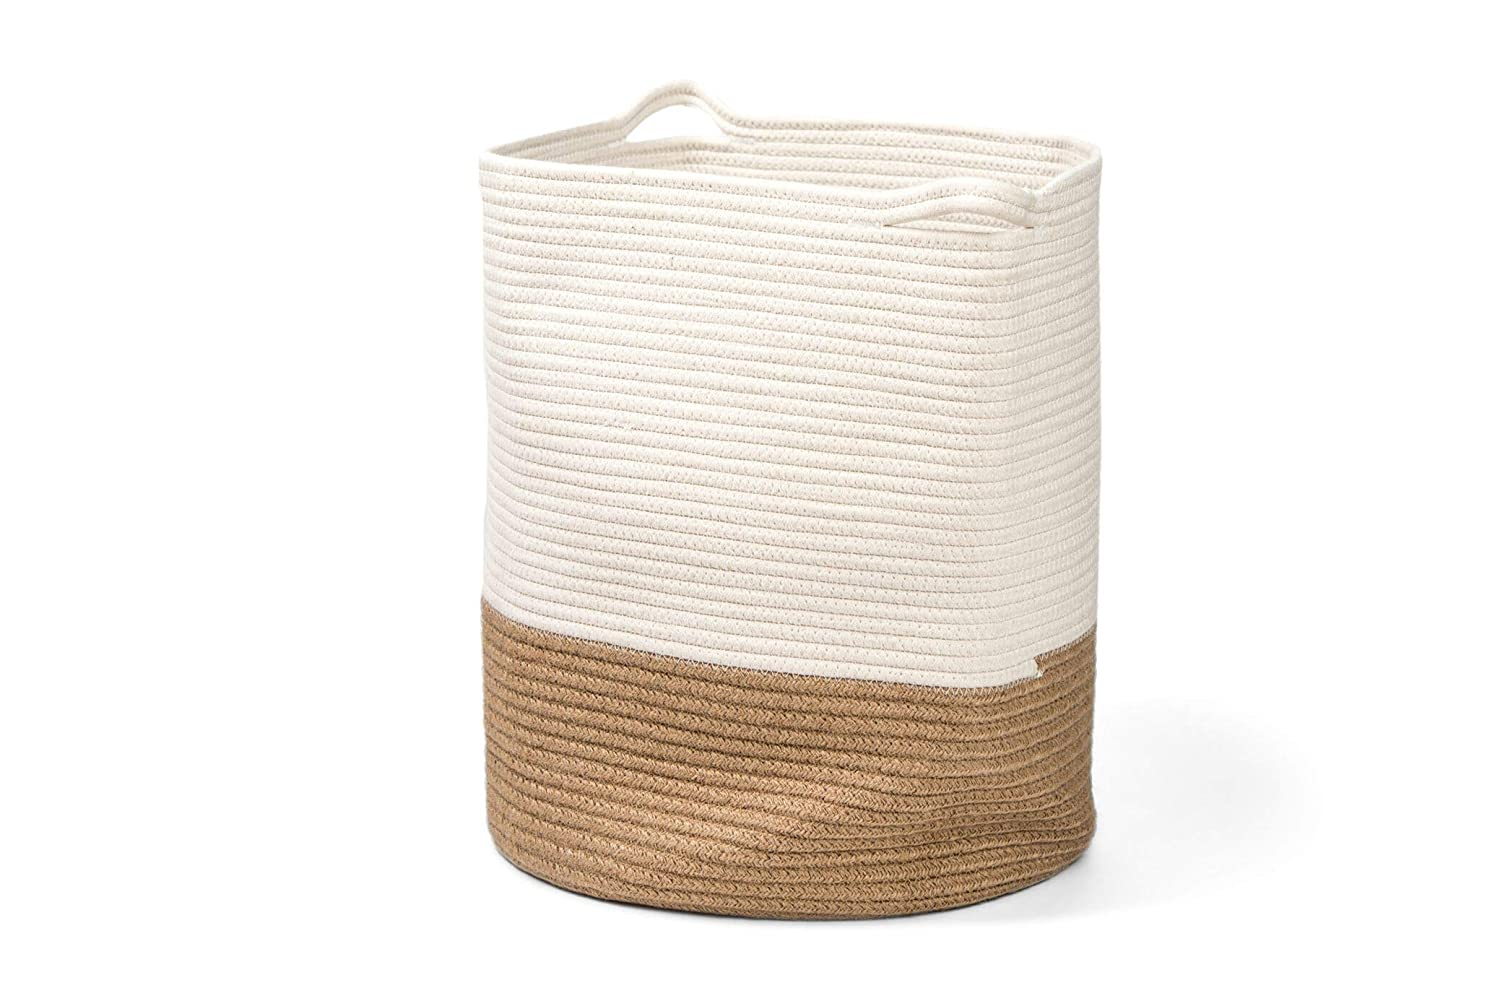 Baby Hamper (16x18) - Woven Rope Basket Baby Clothes Hamper - Baby Laundry Basket - Baby Girl And Baby Boy Hamper With Handles By Oakay Living (Brown)